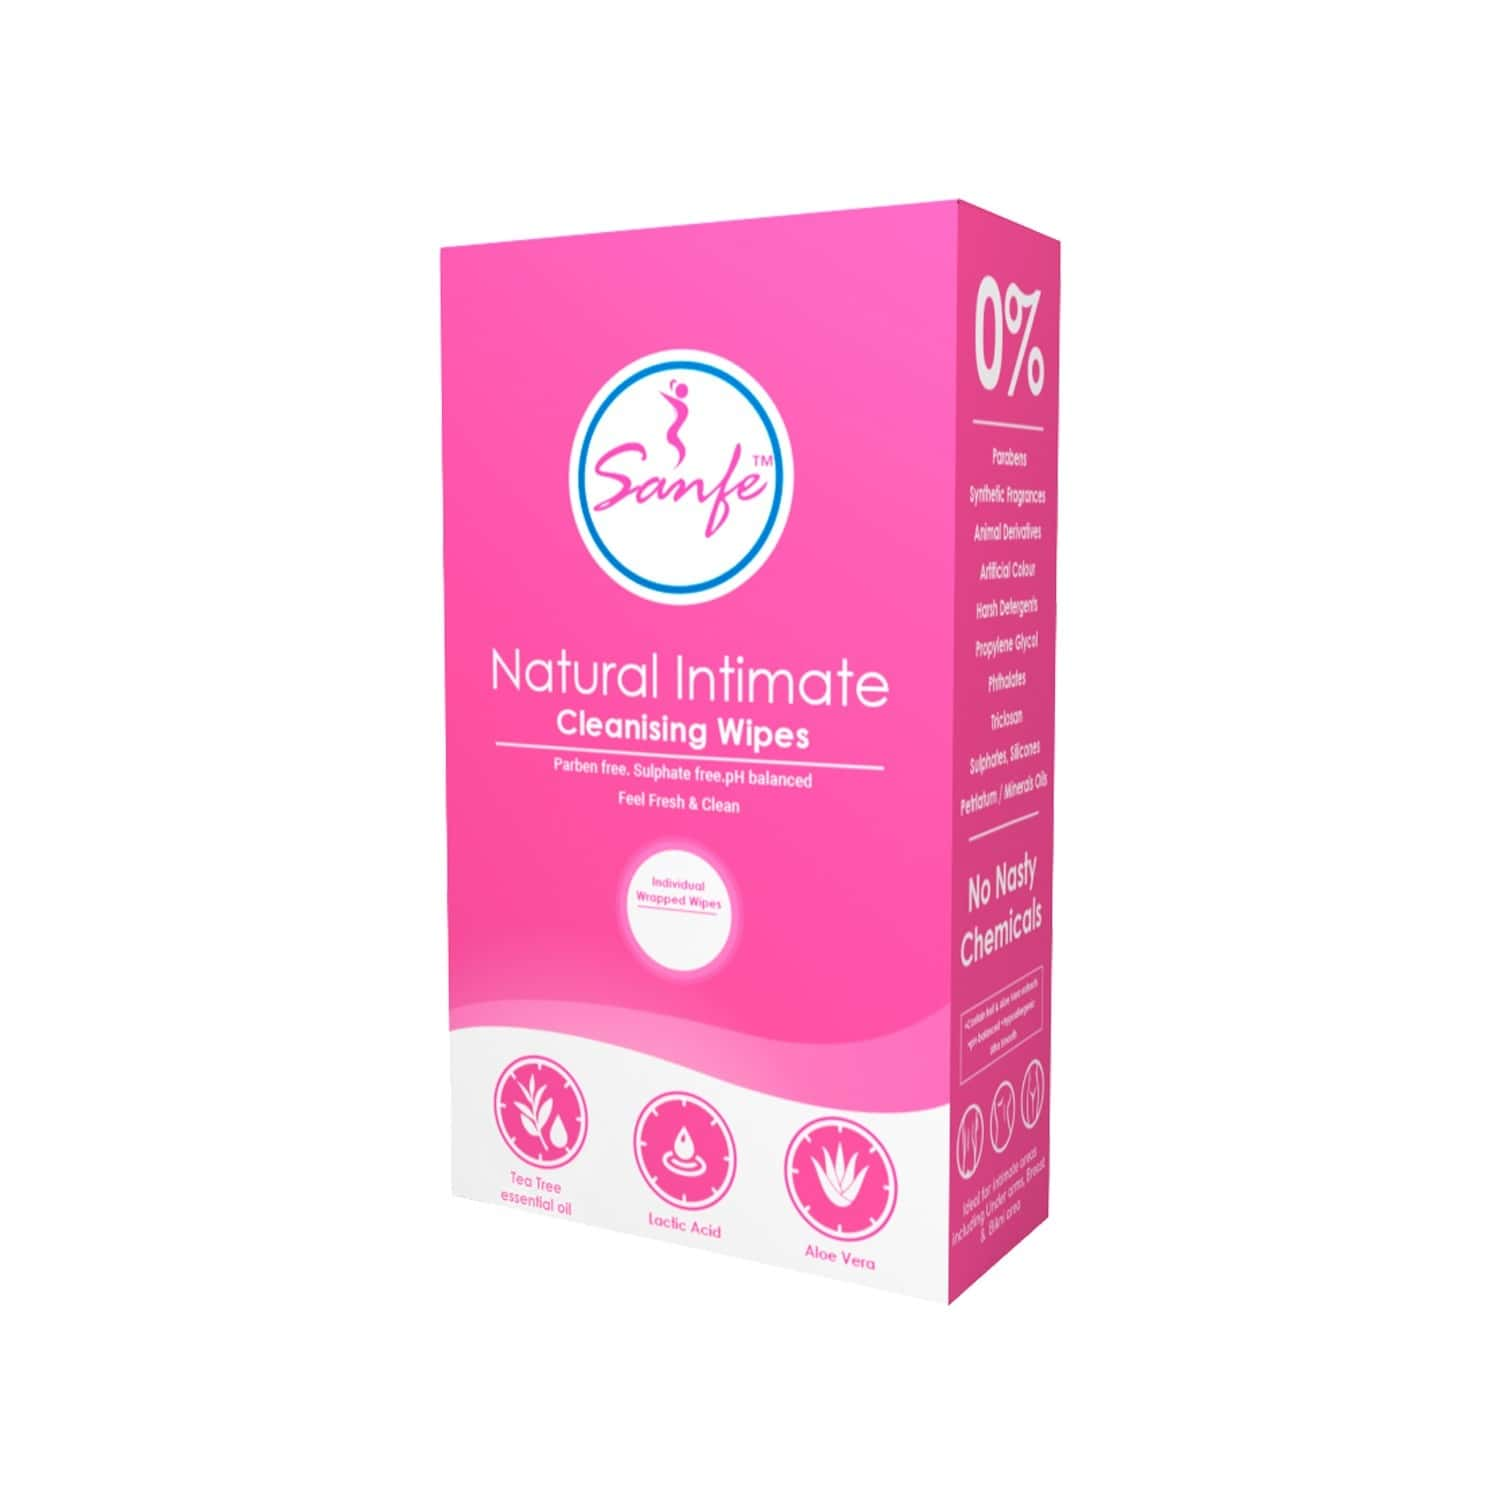 Sanfe Natural Intimate Wipes - 40 Count | 40 Individually Wrapped Wipes |ph Balanced With Tea Tree Essential Oil And Alovera Extracts